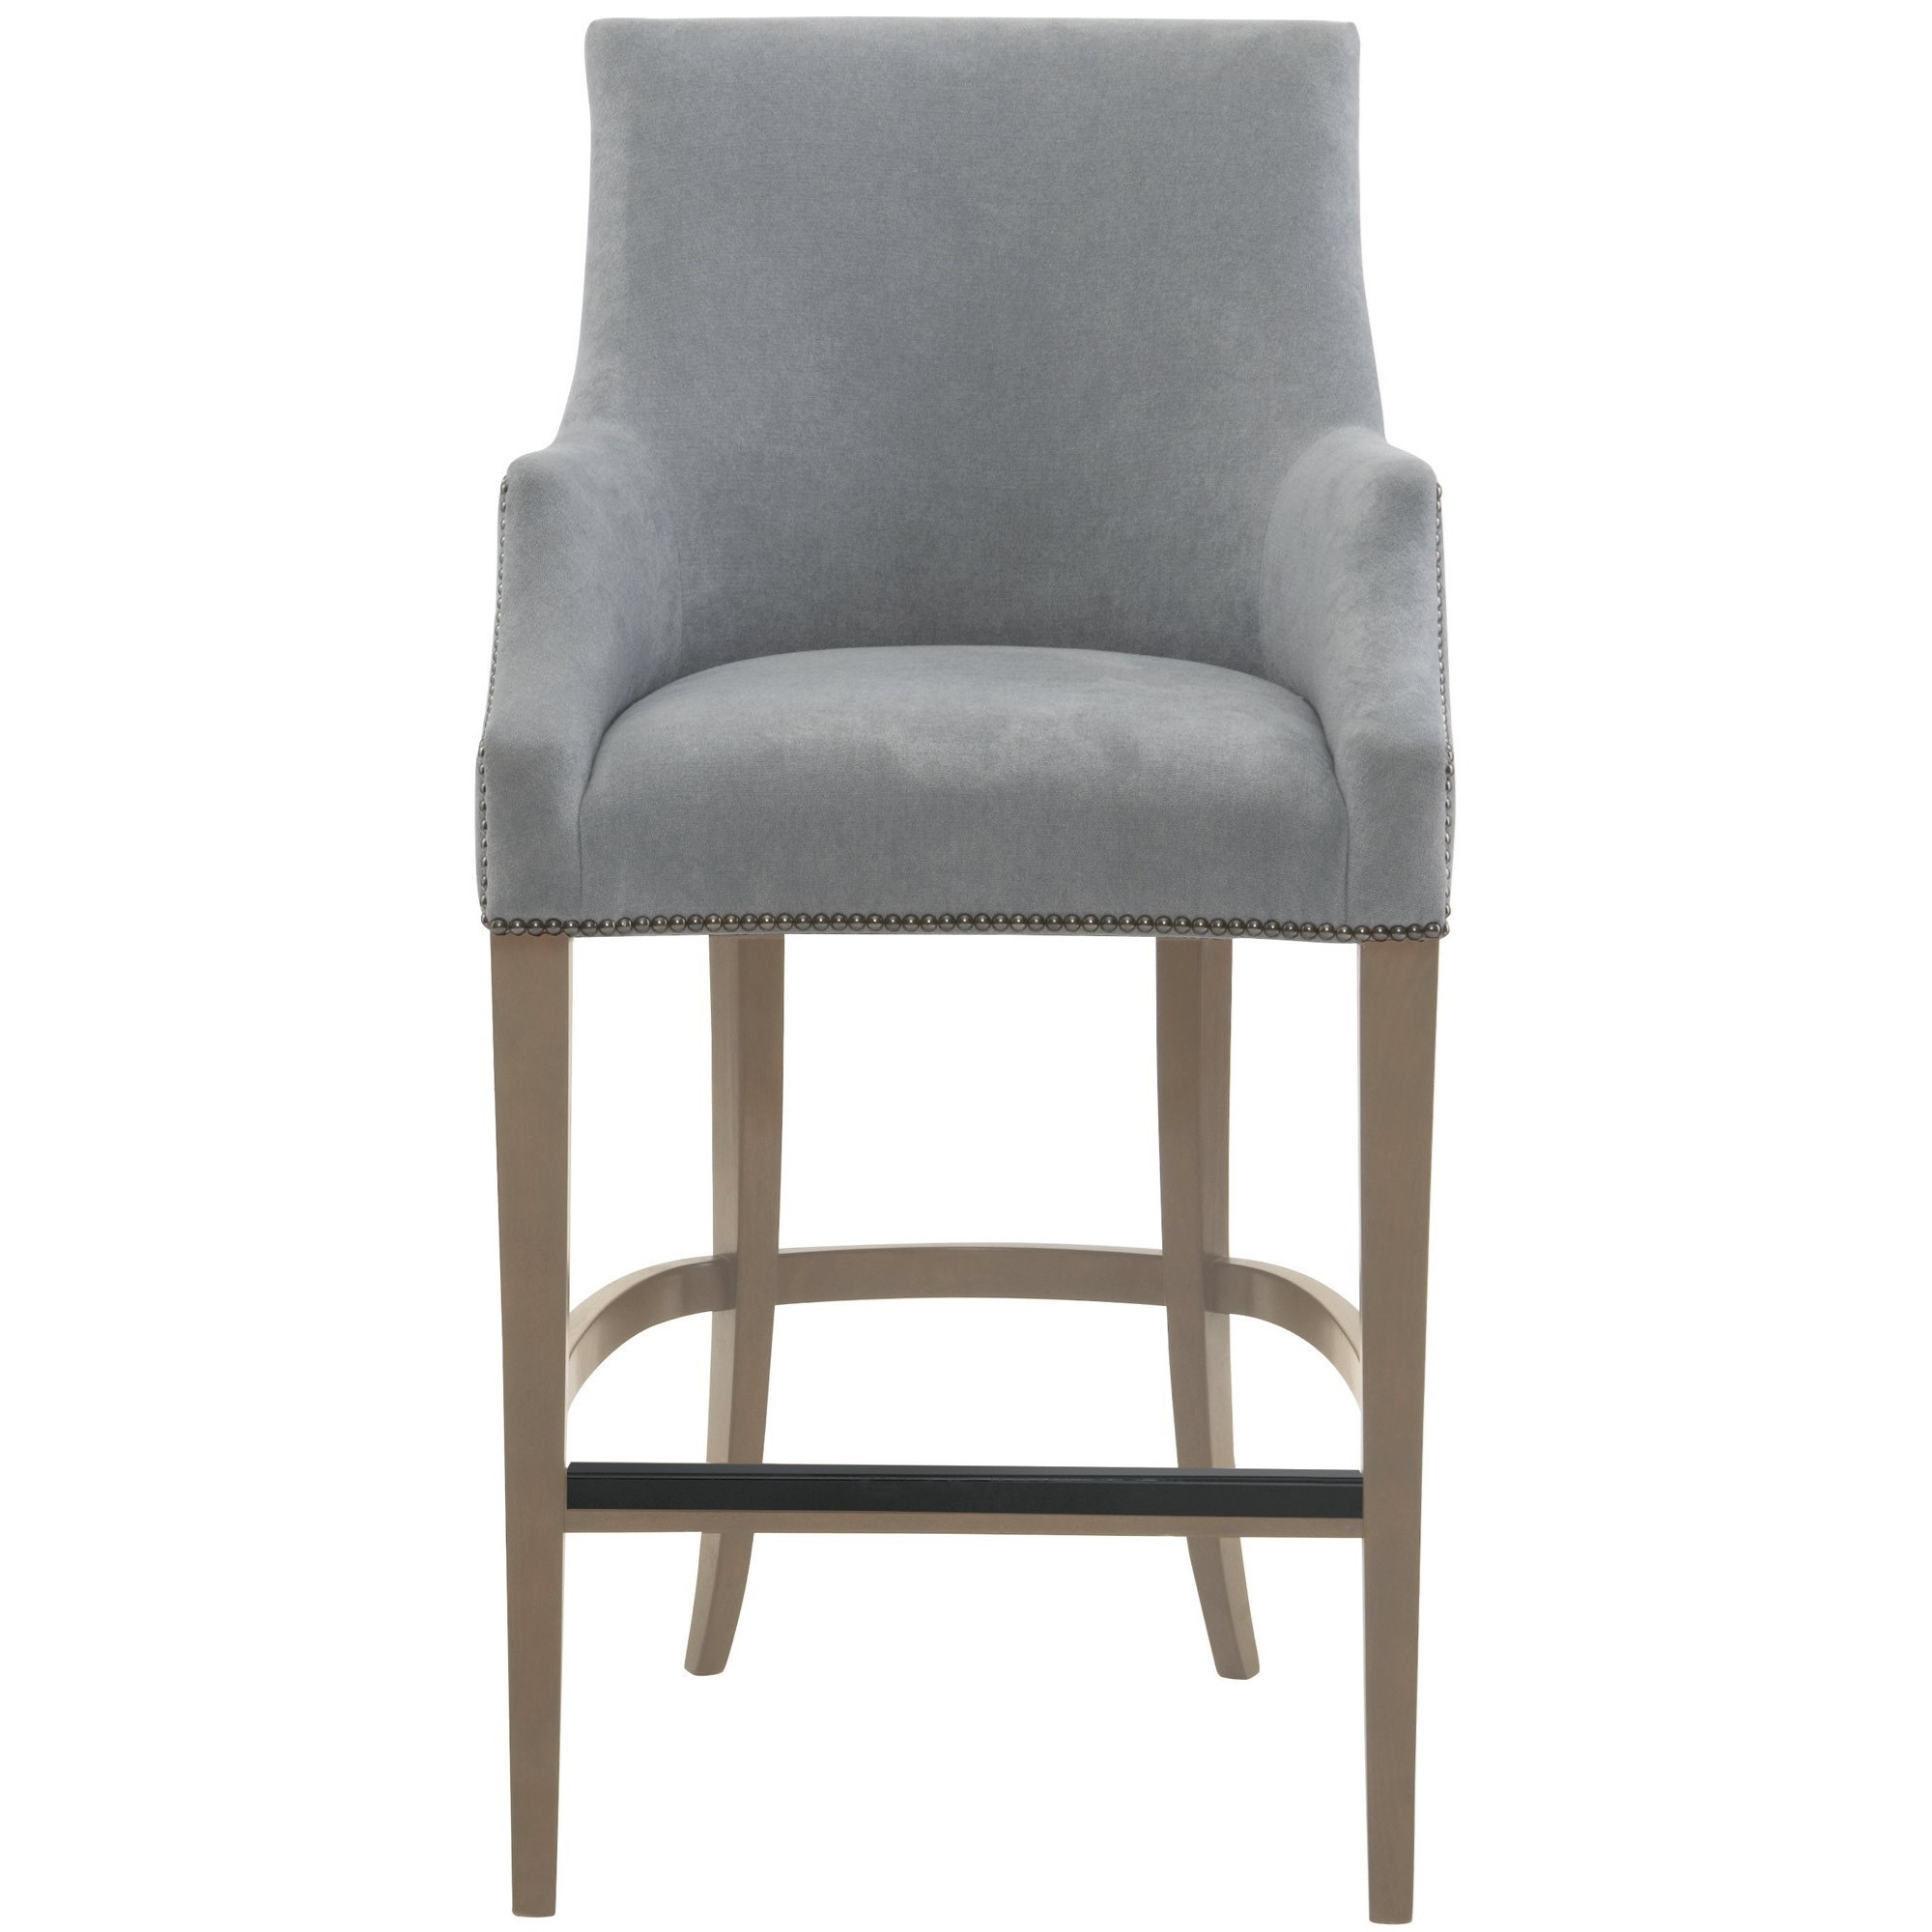 Upholstered Bar Chairs Keeley Upholstered Bar Stool With Nail Head Trim By Bernhardt At Dunk Bright Furniture